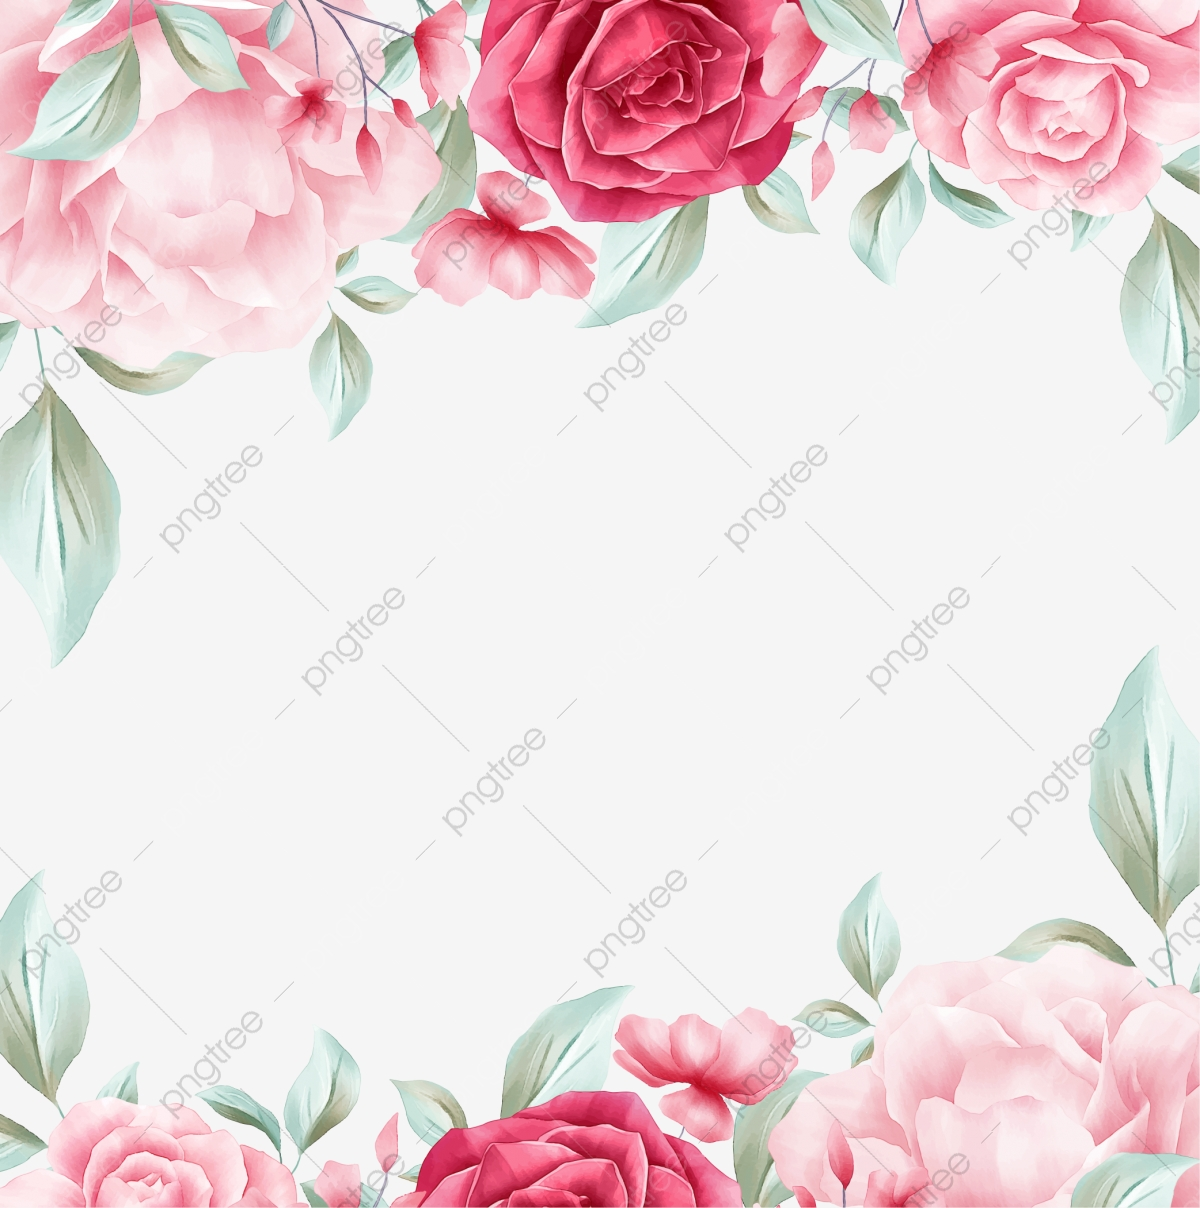 Watercolor Floral Border Of Red And Creamy Blush Roses Flowers